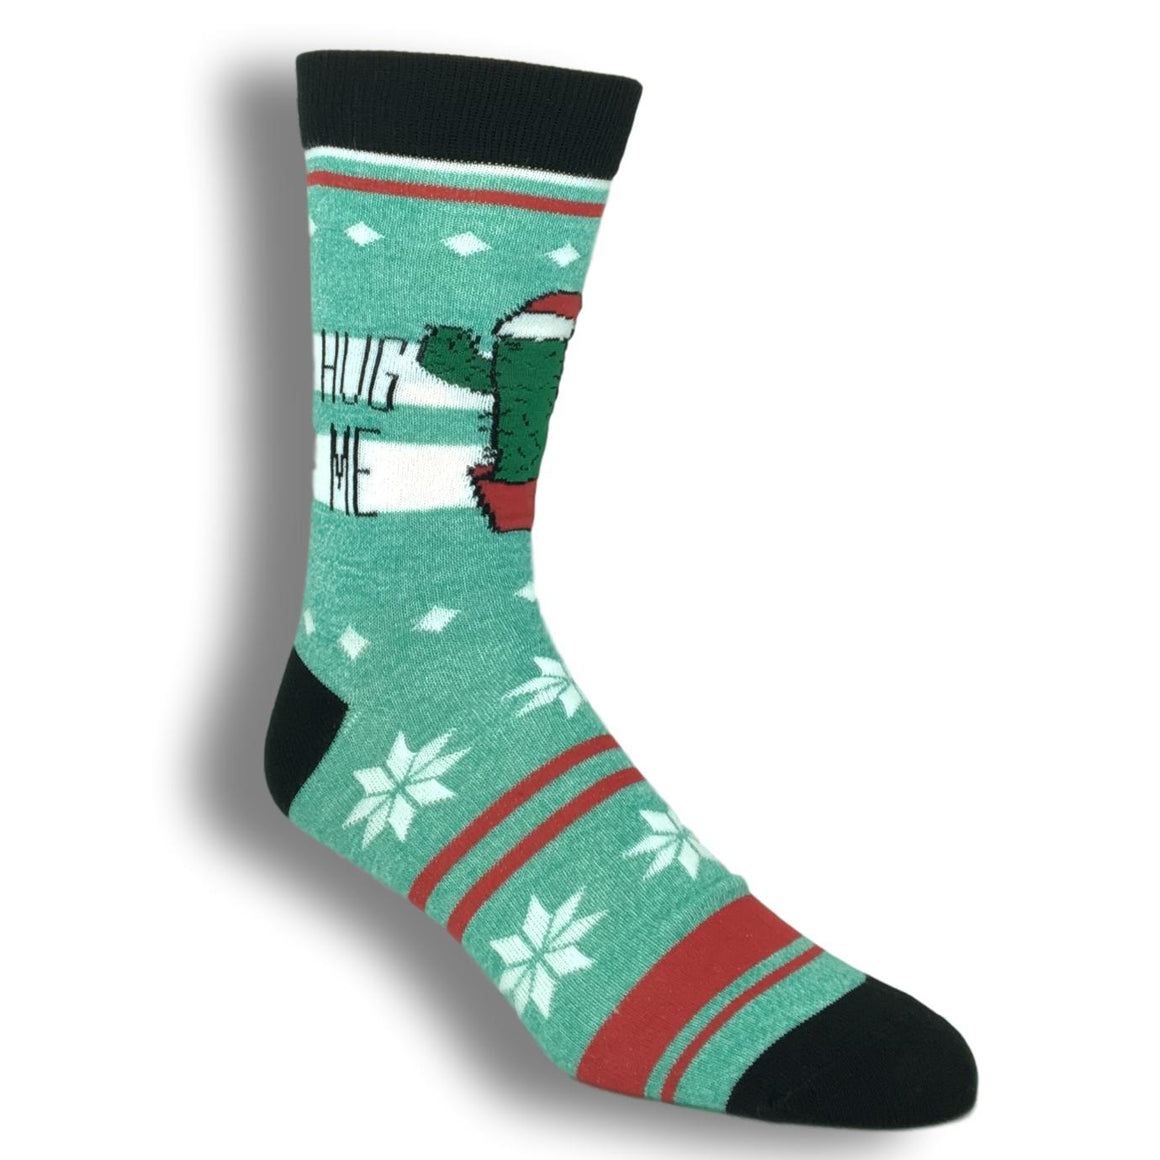 Hug Me Cactus Christmas Socks - The Sock Spot